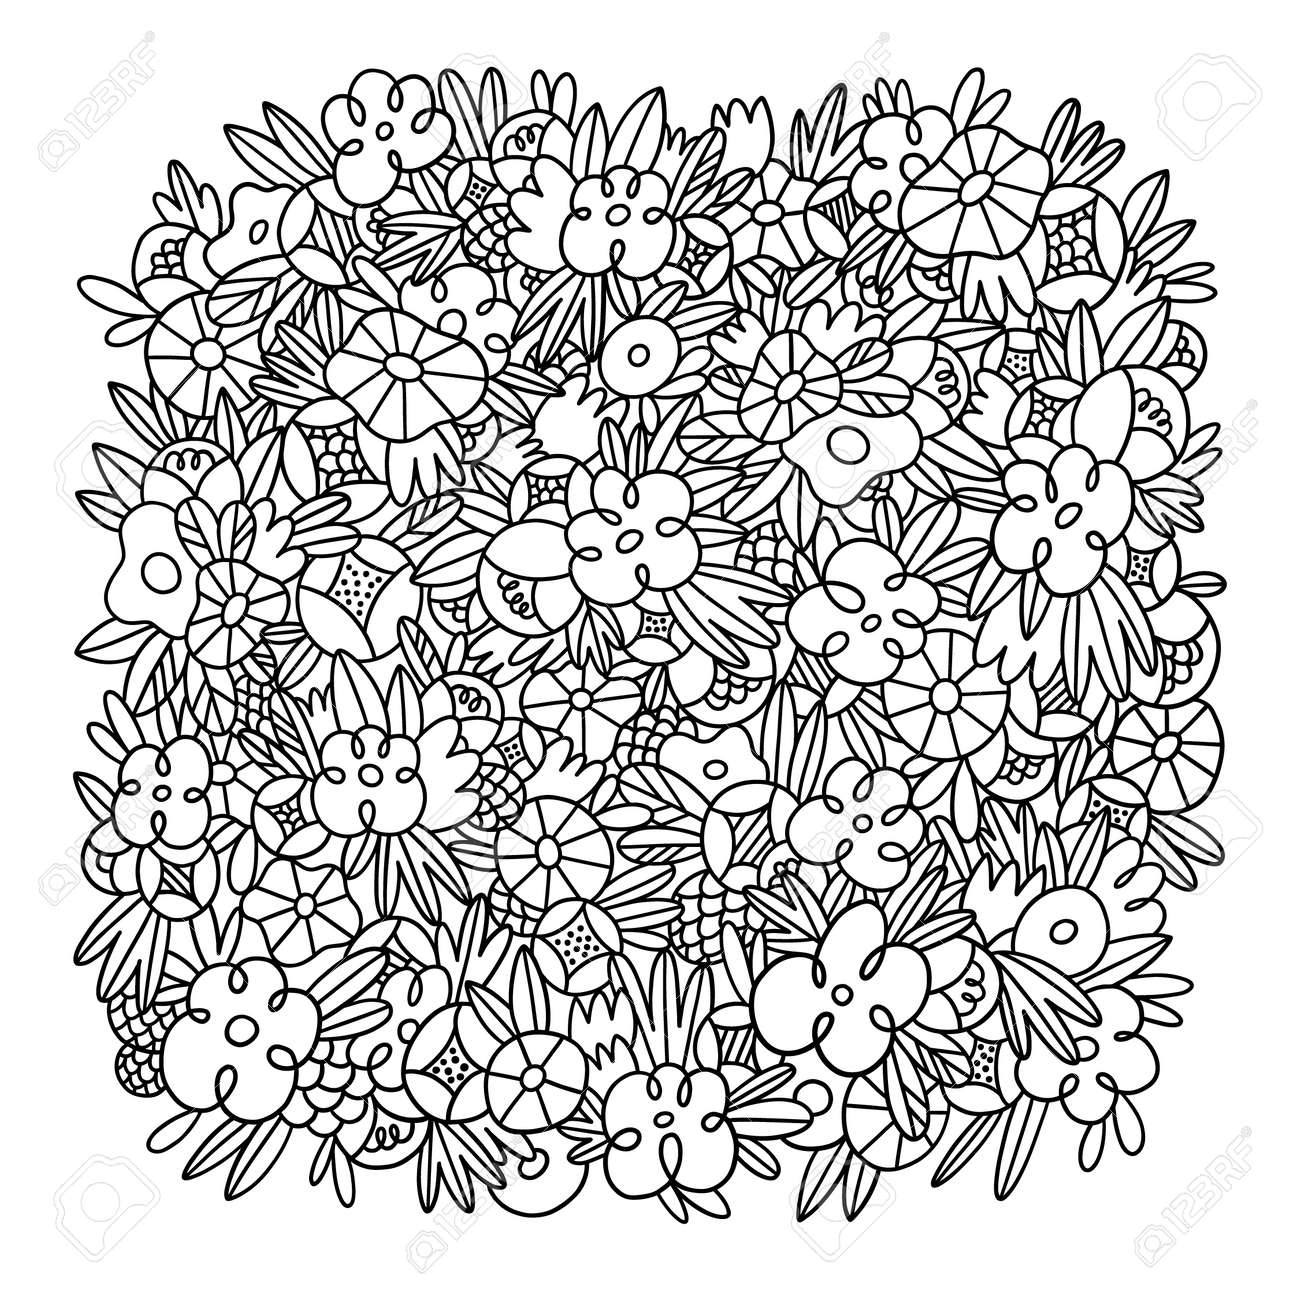 Wild flowers and grass vector square background template, crazy black and white outlined floral doodles, isolated on white background - 167089788